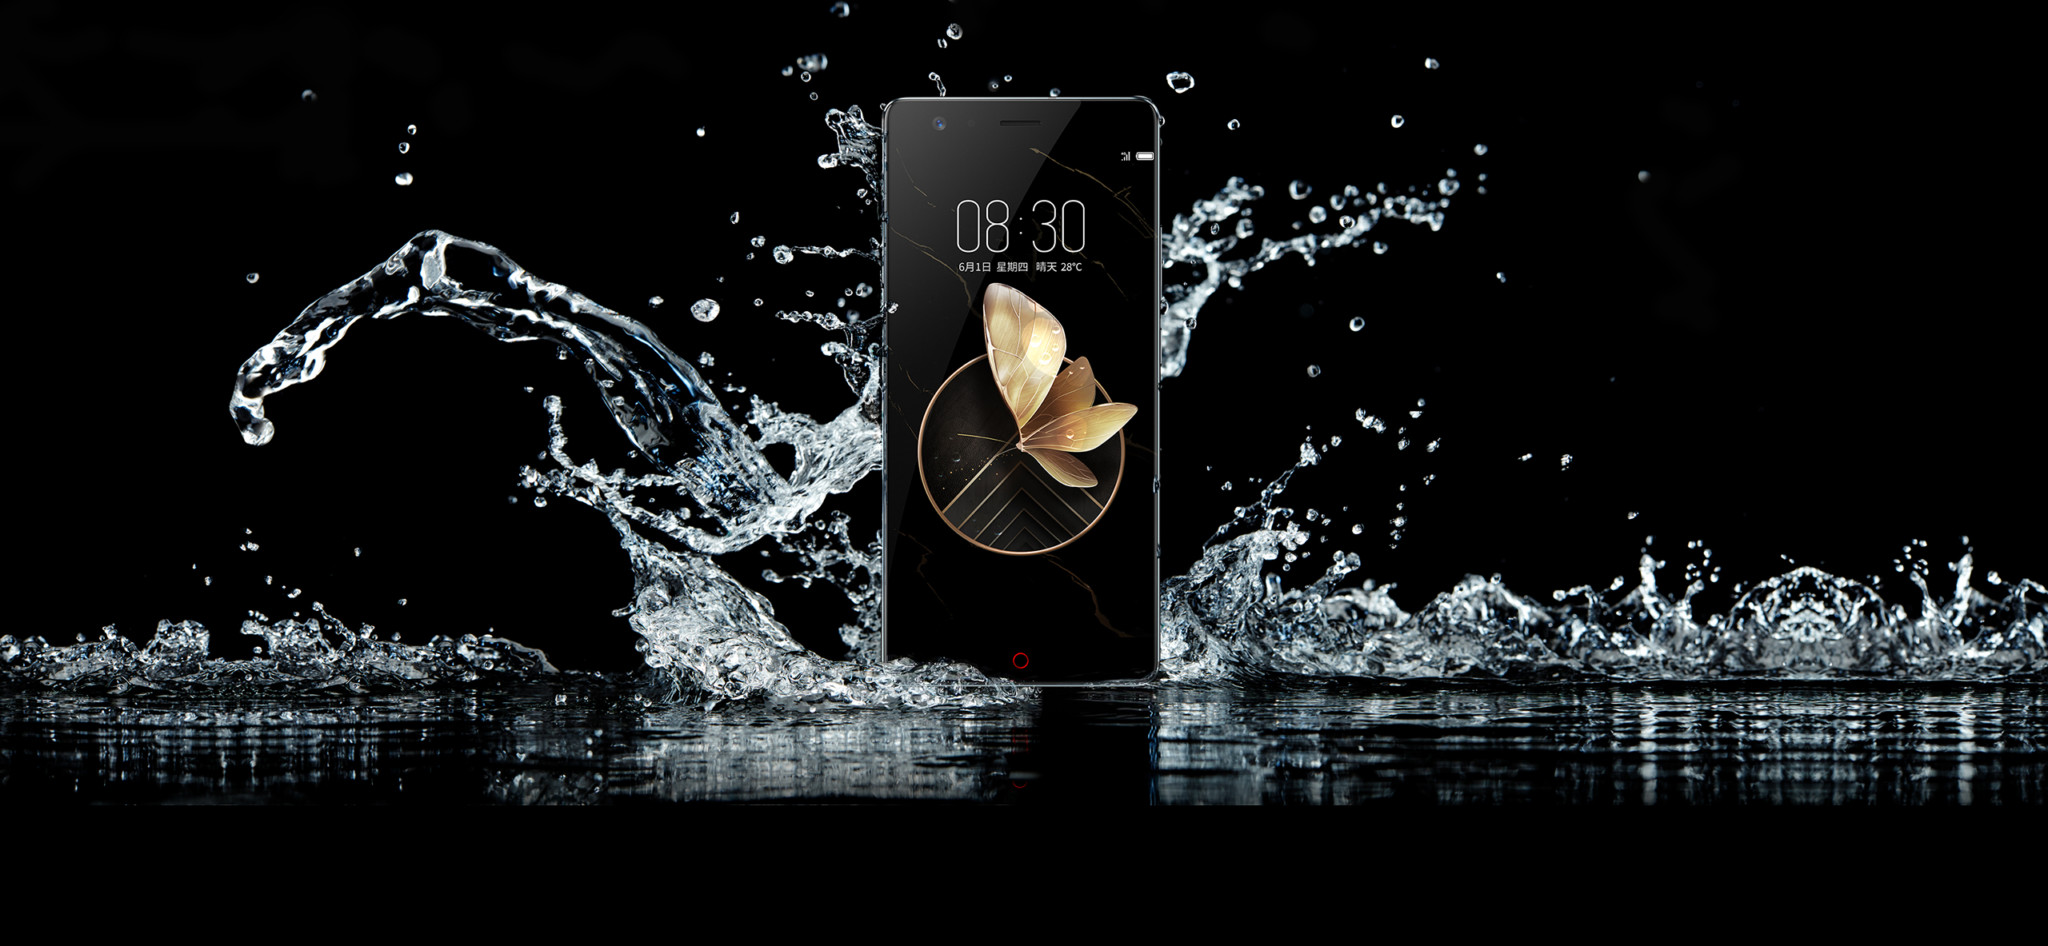 Nubia-Z17-splashproof